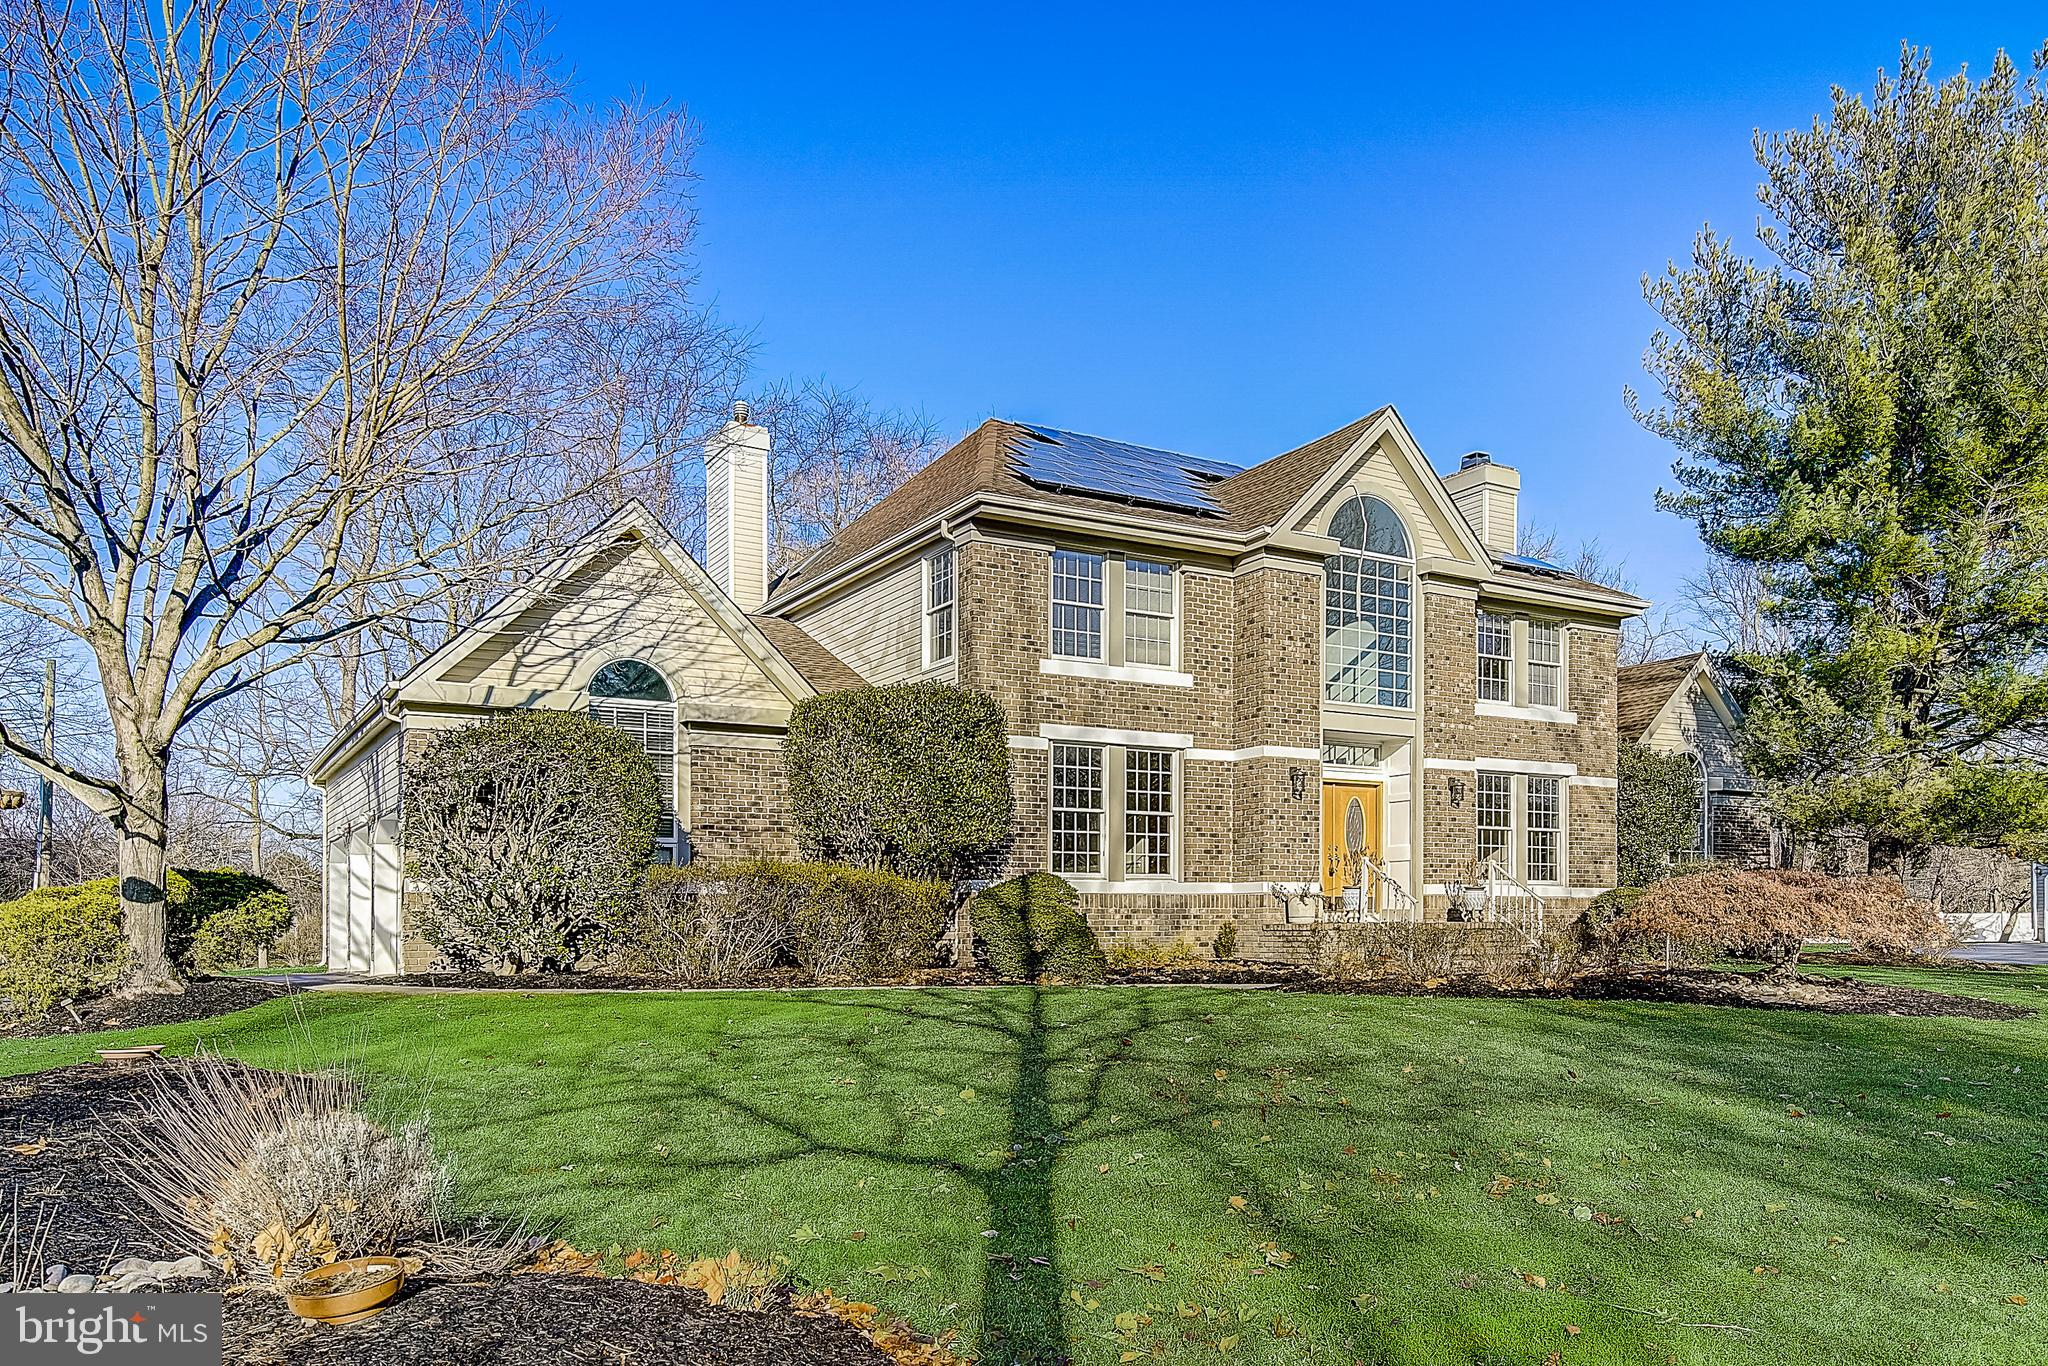 5 REVERE COURT, PRINCETON JUNCTION, NJ 08550